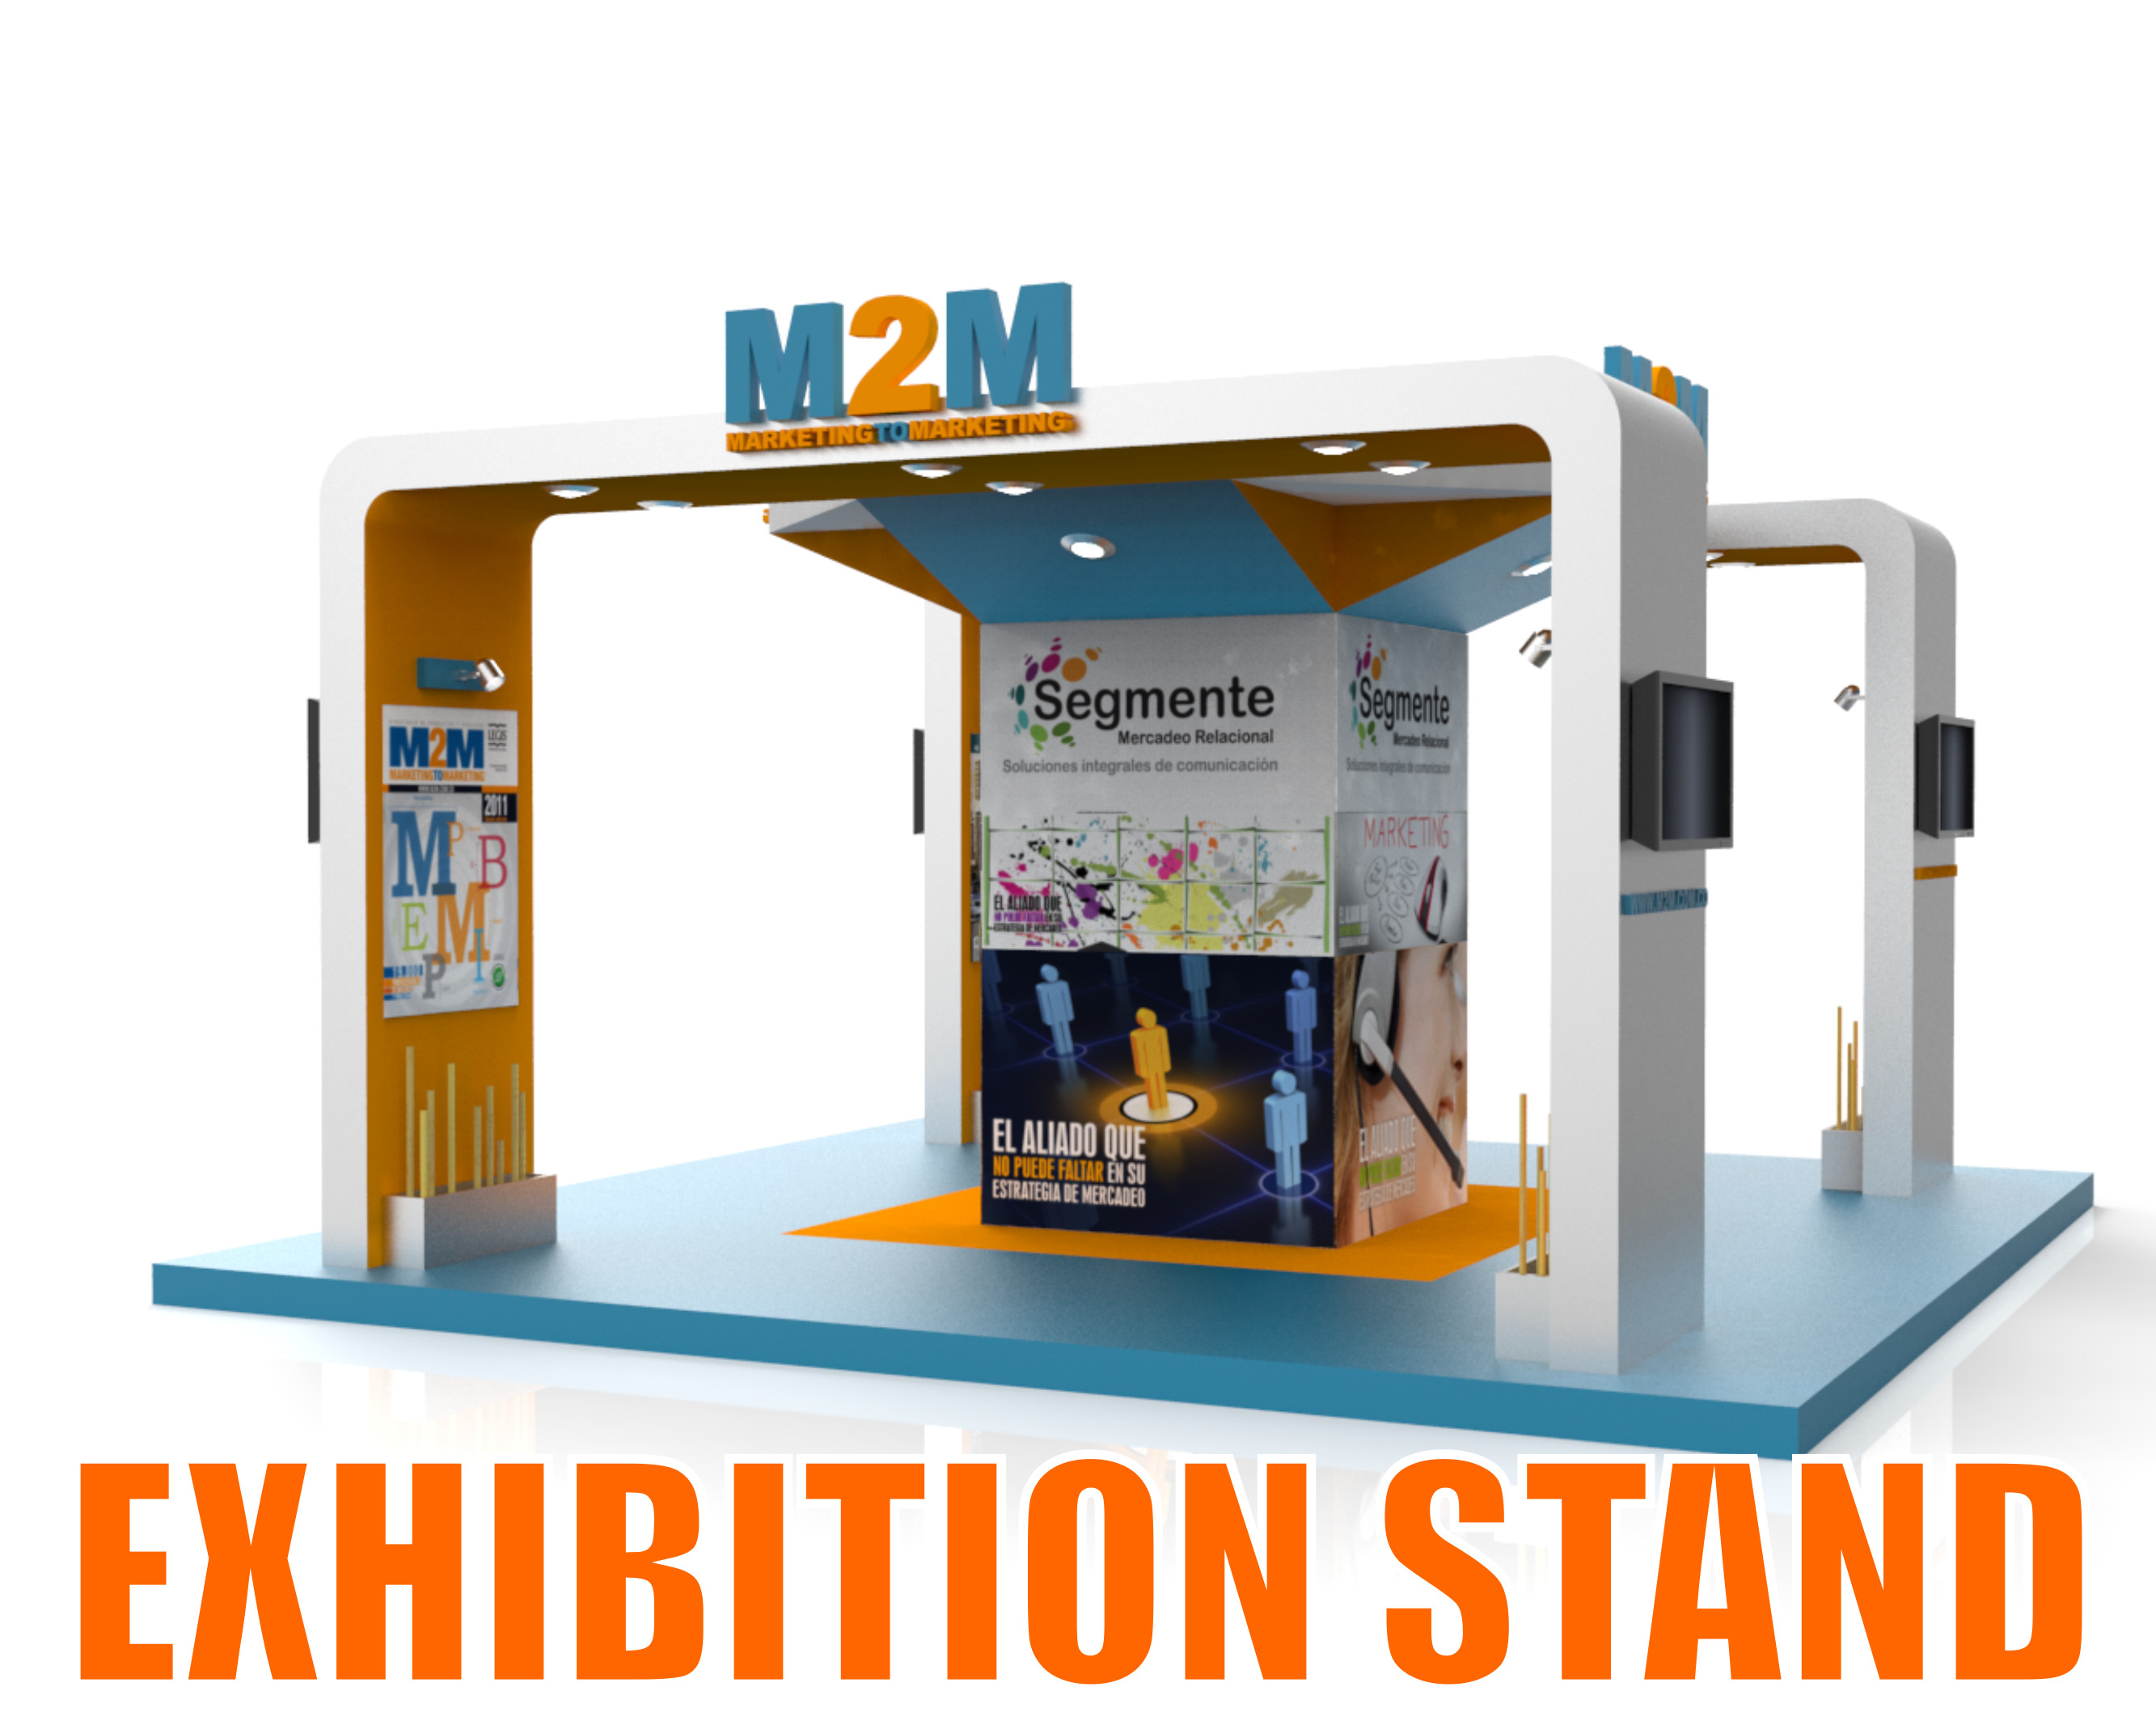 Exhibition Stand Sketchup : D model exhibition stand